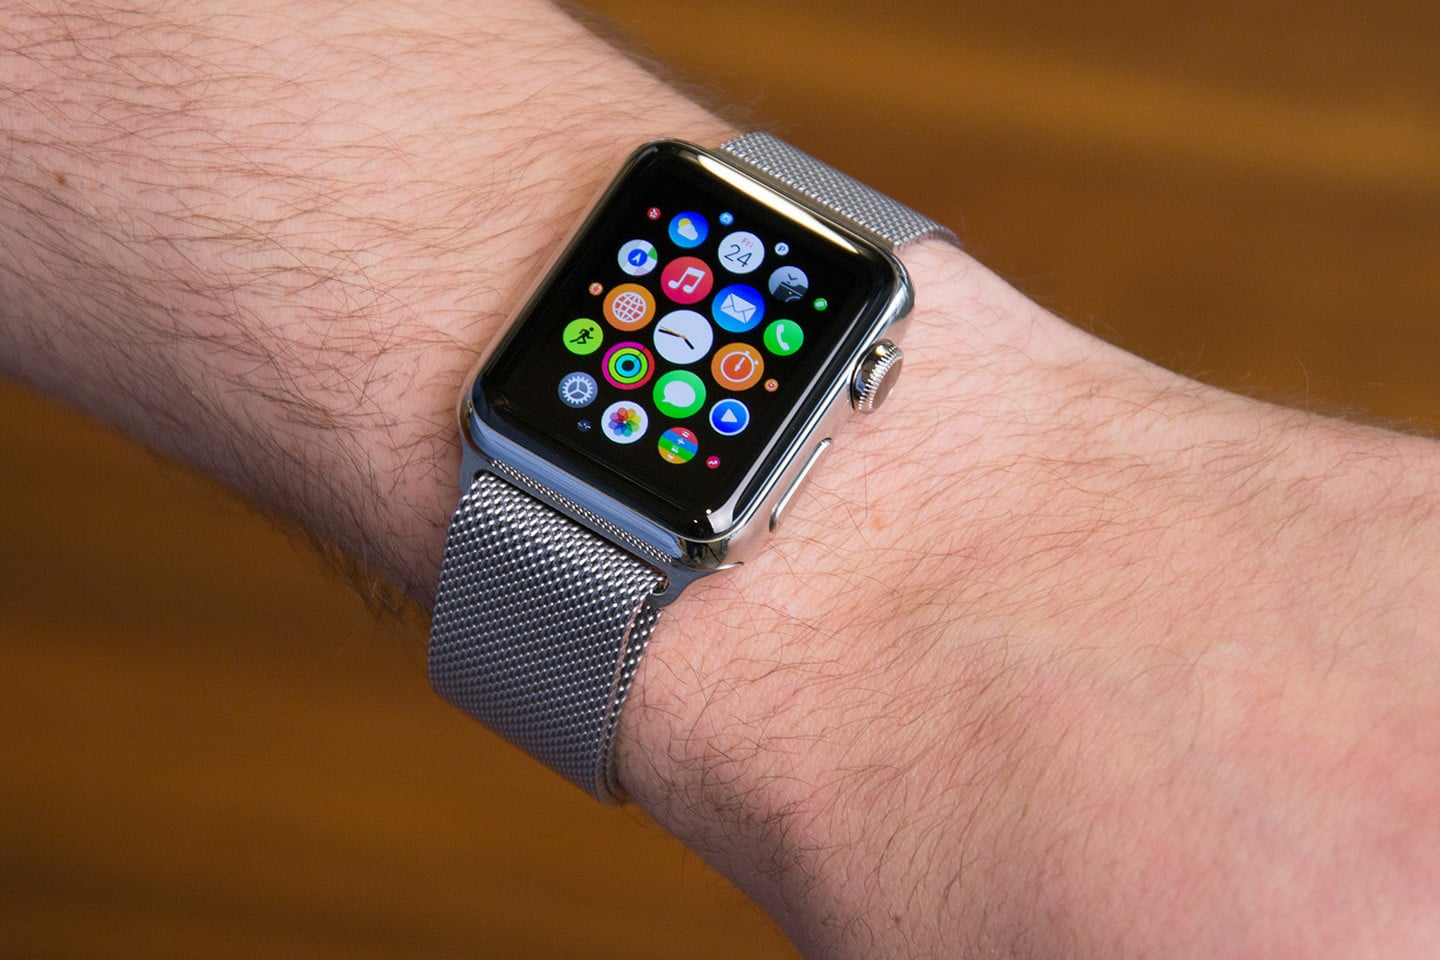 Apple Watch Repair: Get Your First Gen Wearable Device Fixed for Free